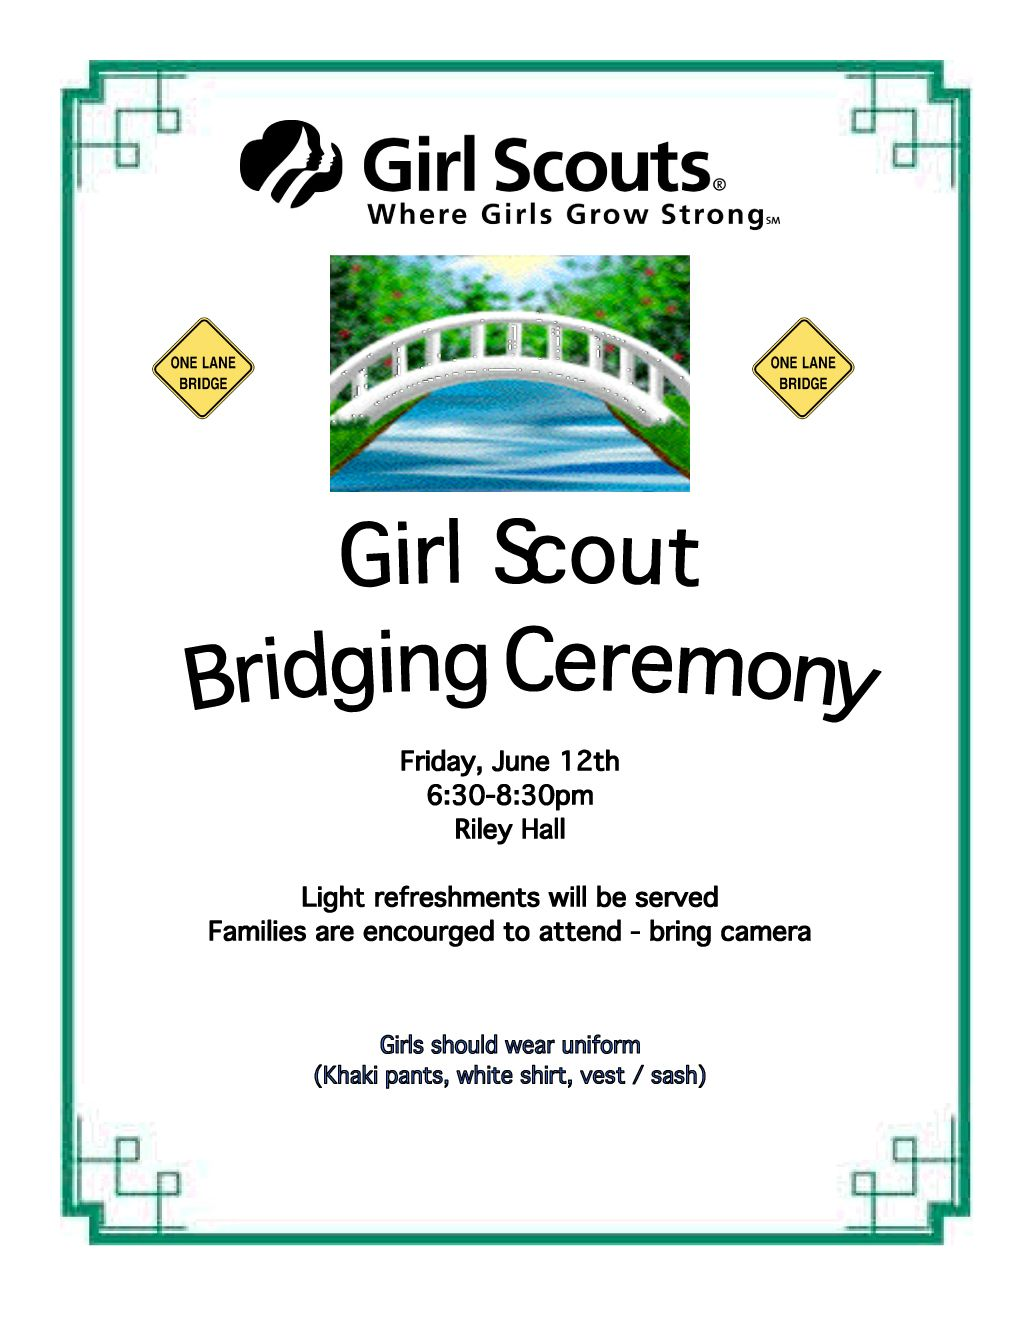 Bridging Ceremony - Hanover Girl Scouts | Ideas for Girl ...